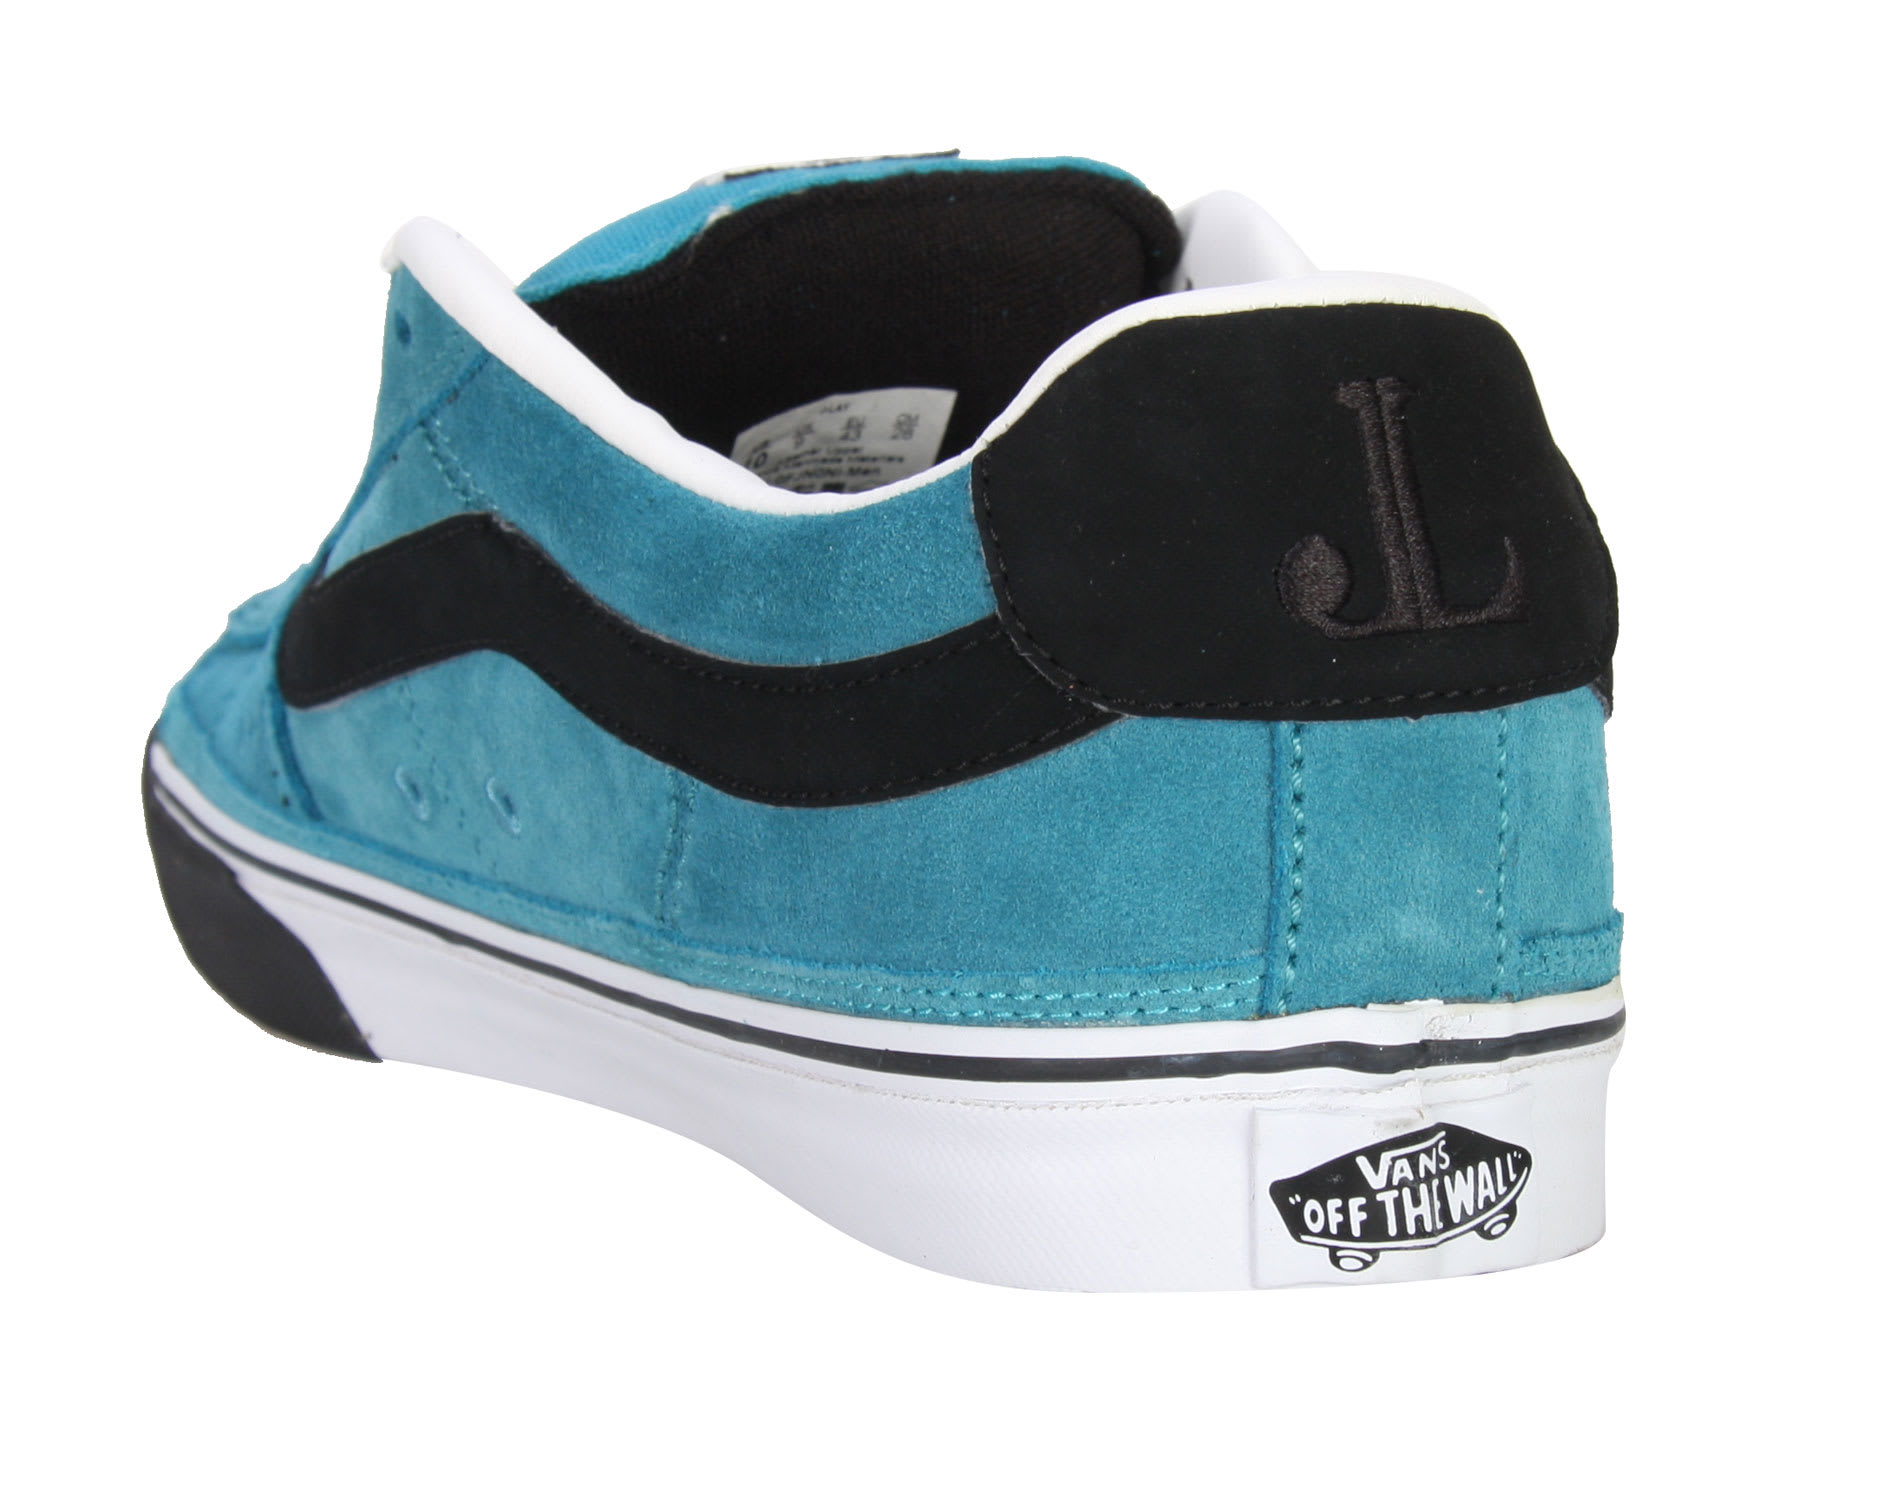 525a23a97a Vans J Lay Skate Shoes - thumbnail 2